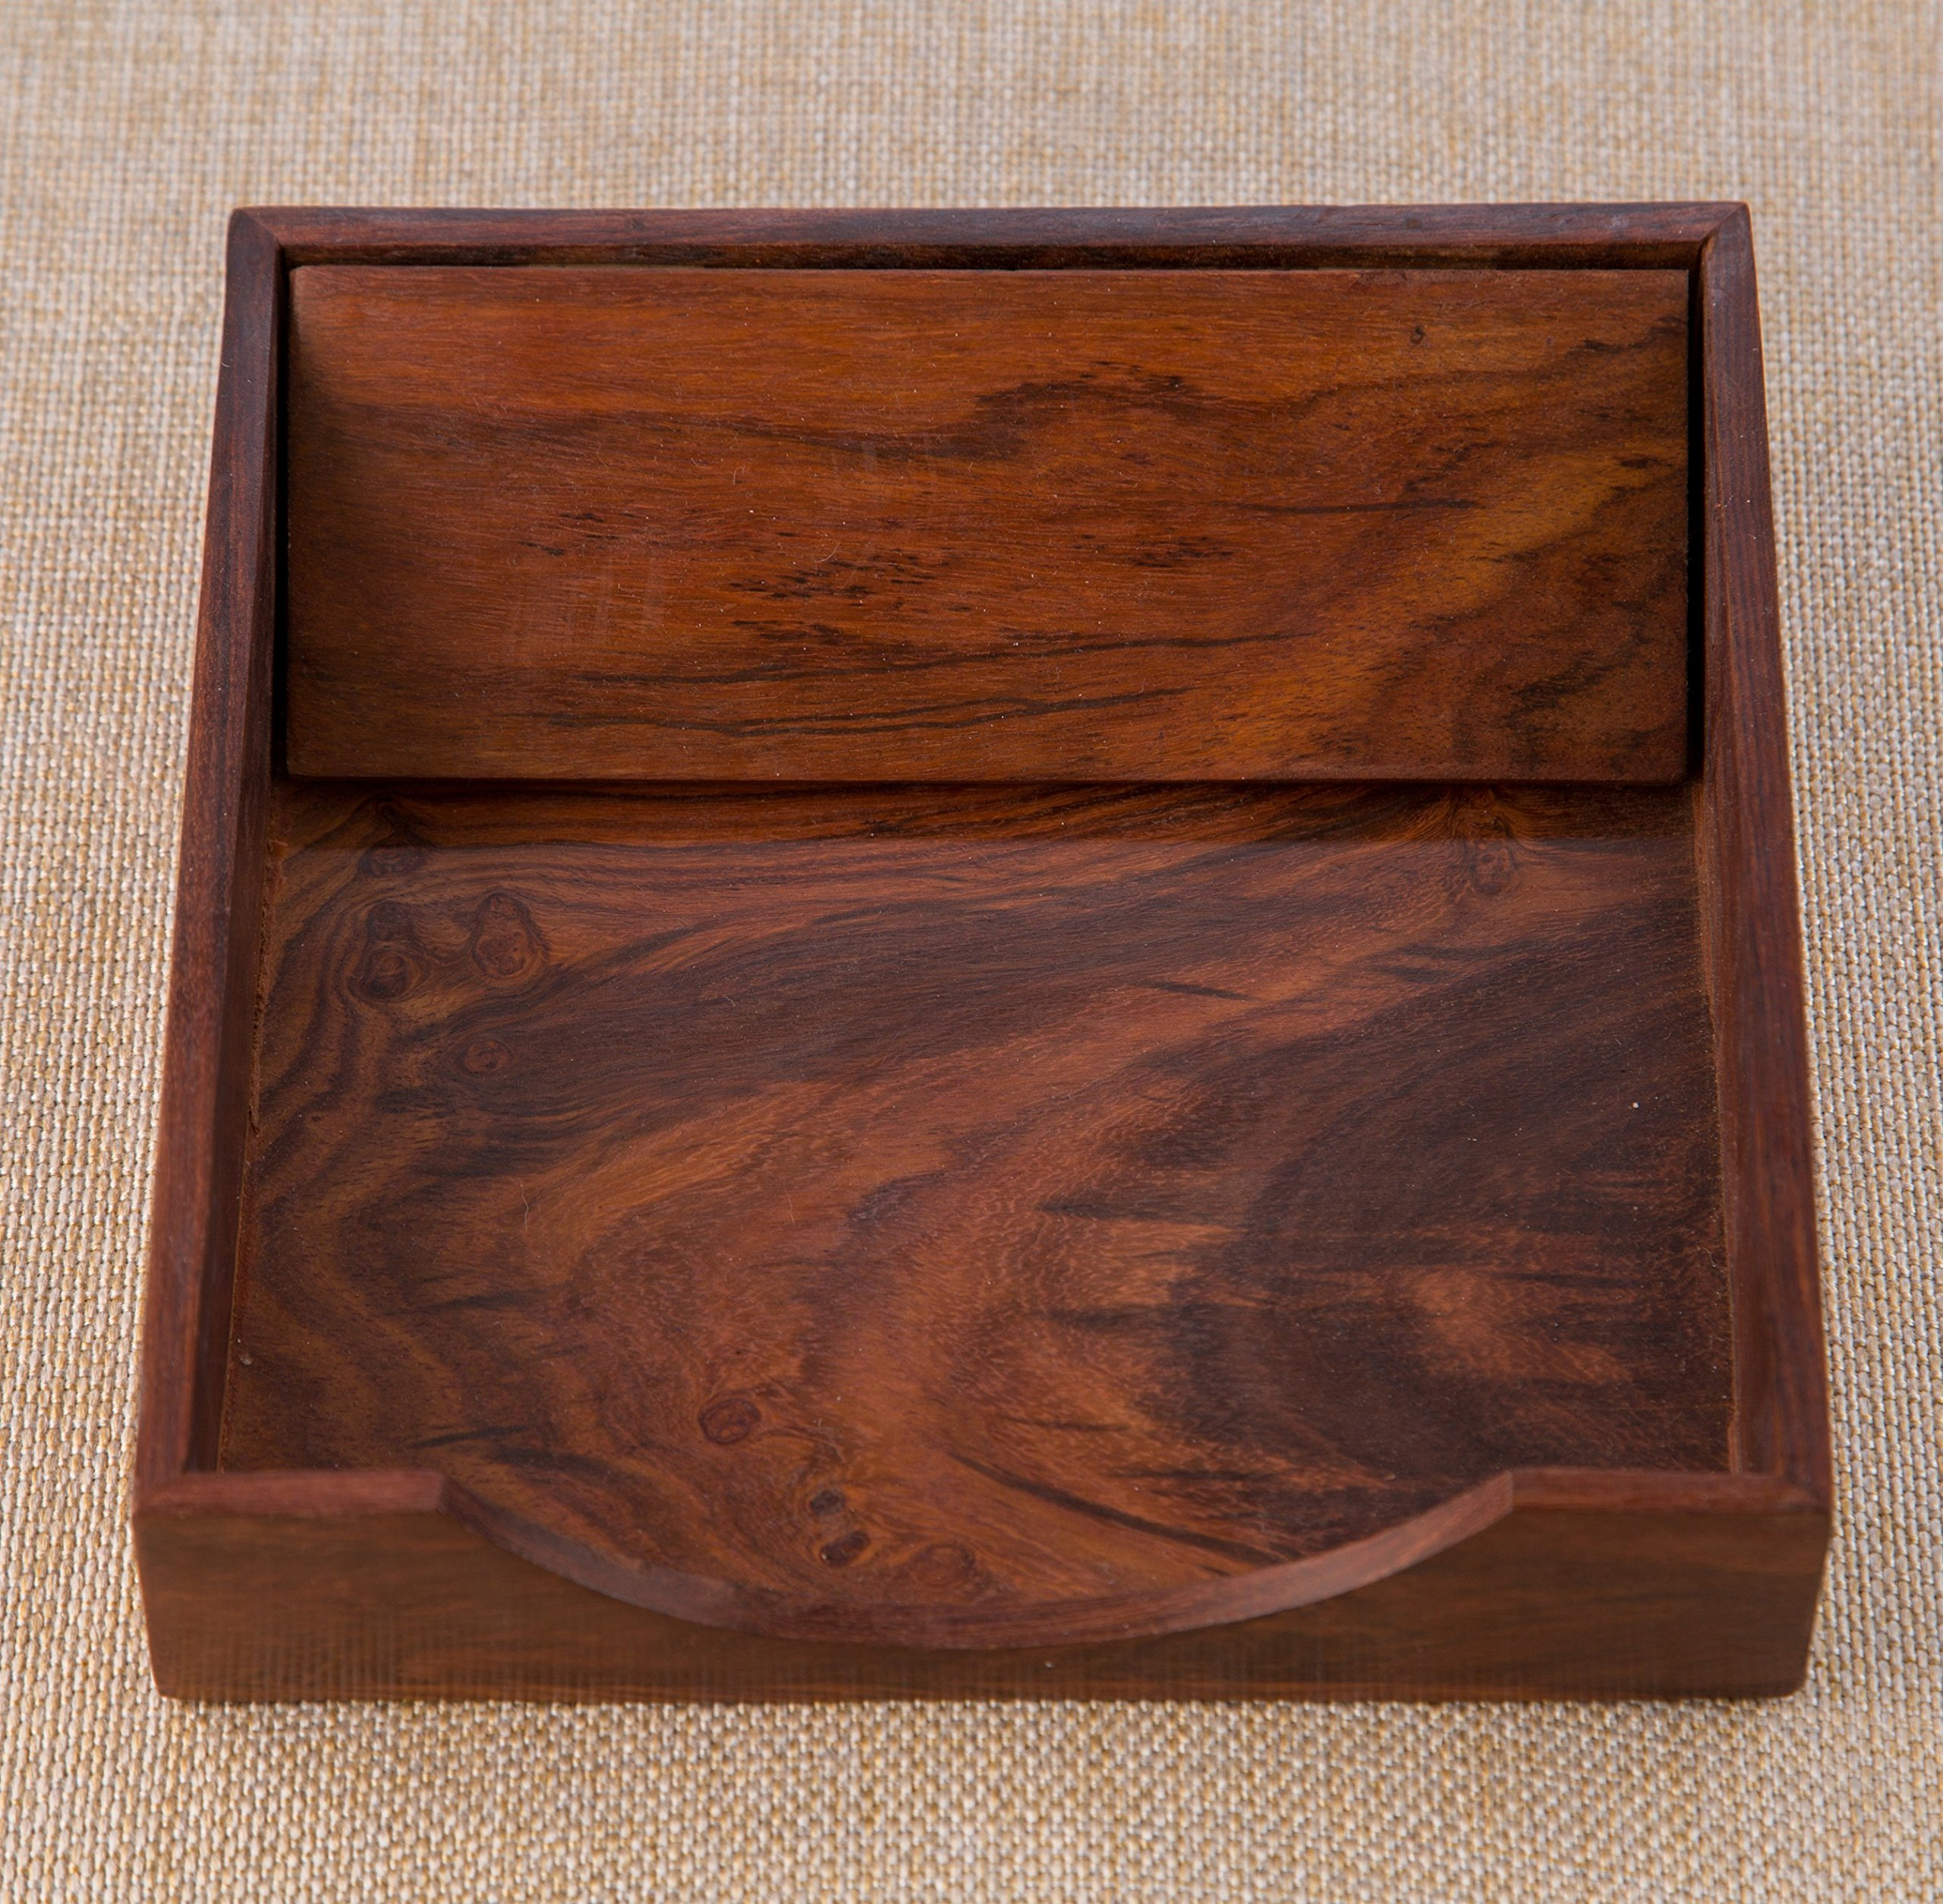 Rusticity Wood Paper Napkin Holder for Napkin and Tissues - Sleek Design | Handmade | (7x7 in) by Rusticity (Image #3)